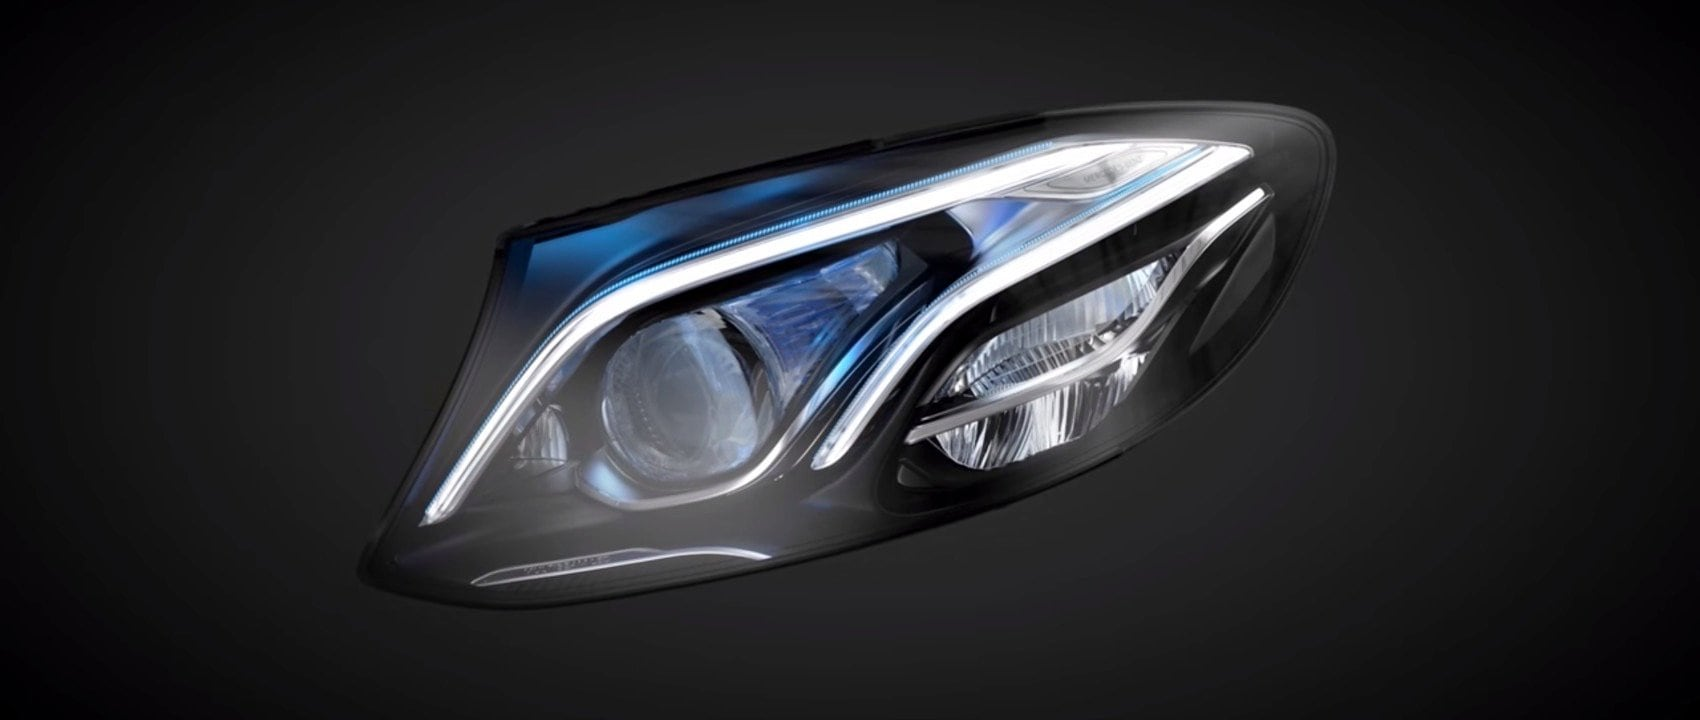 The new MULTIBEAM LED headlight of the Mercedes-Benz E-Class.